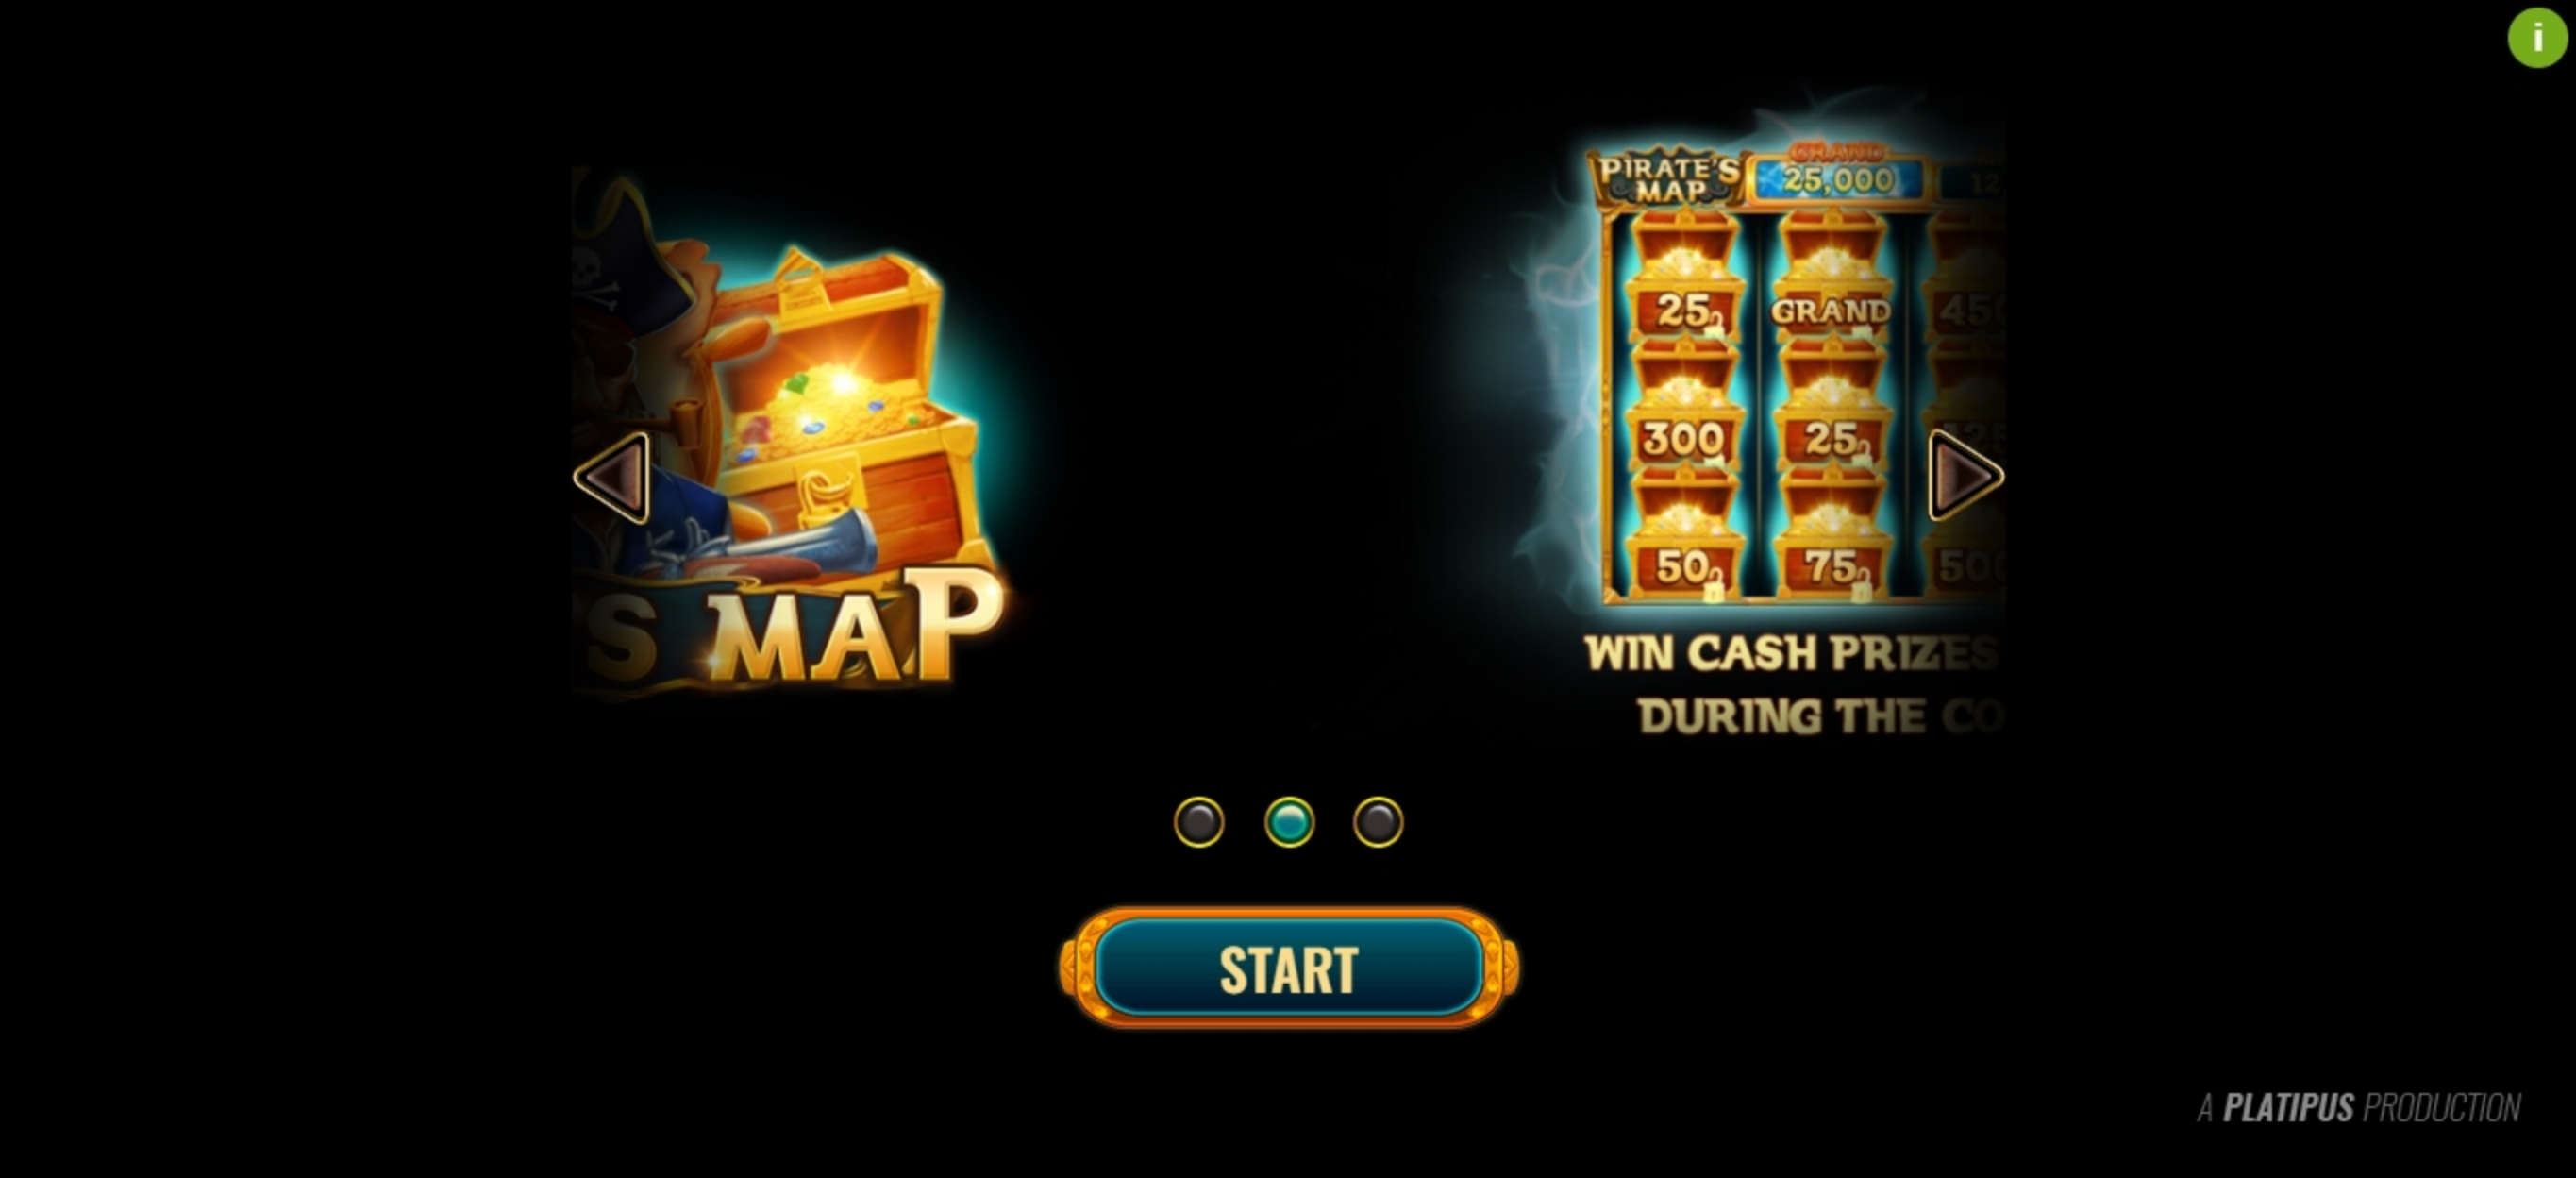 Play Pirate's Map Free Casino Slot Game by Platipus